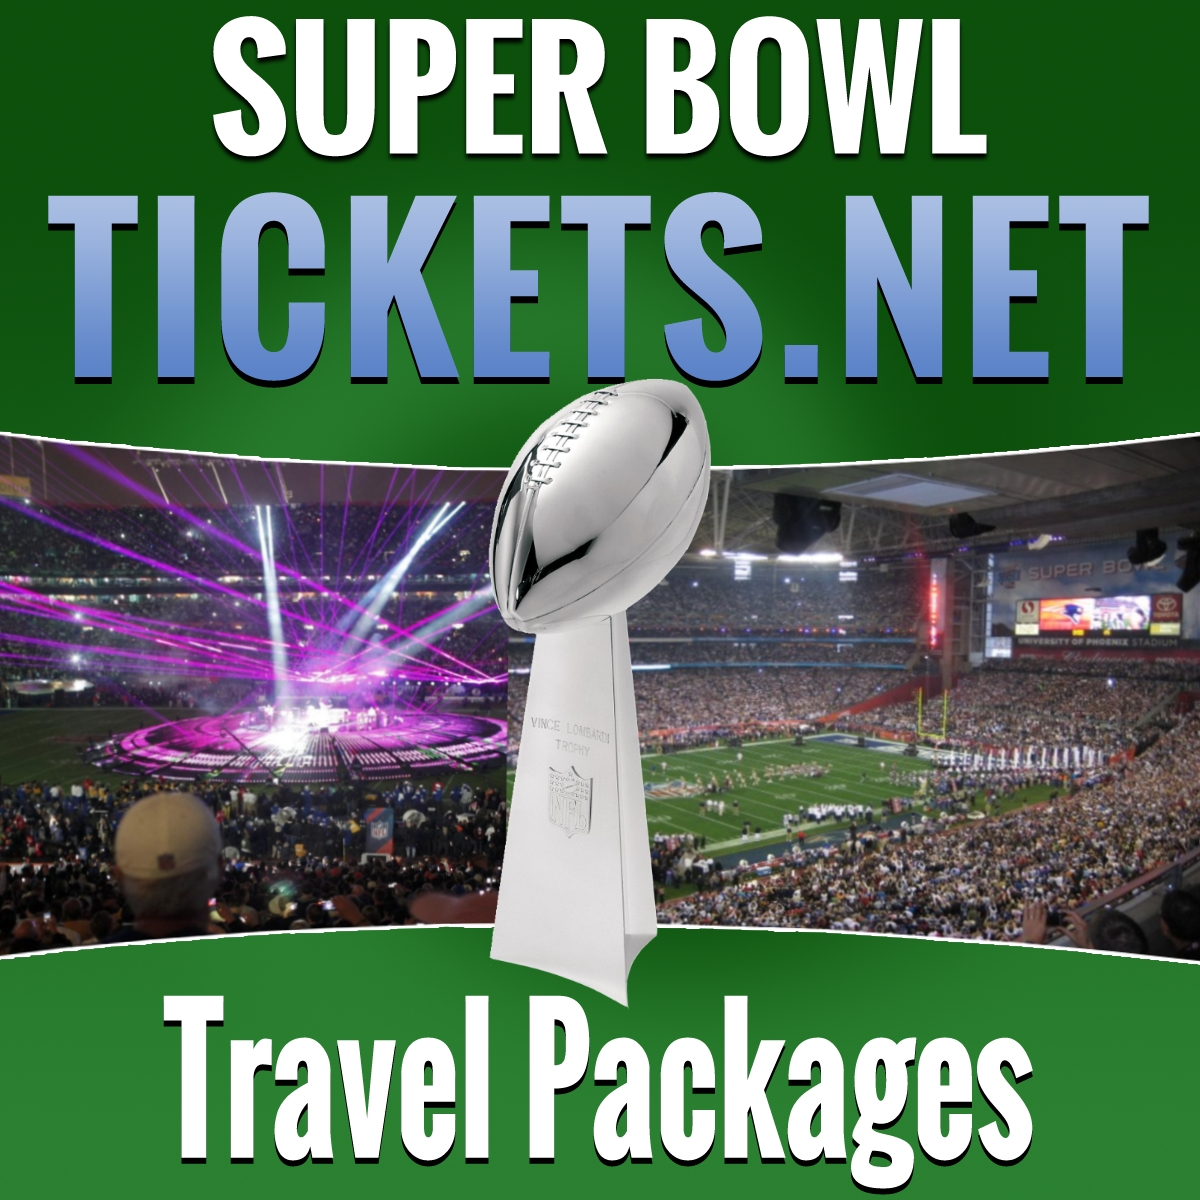 Nfl Raises Super Bowl Ticket Prices For 2014 Game in Super Bowl Tickets For Sale